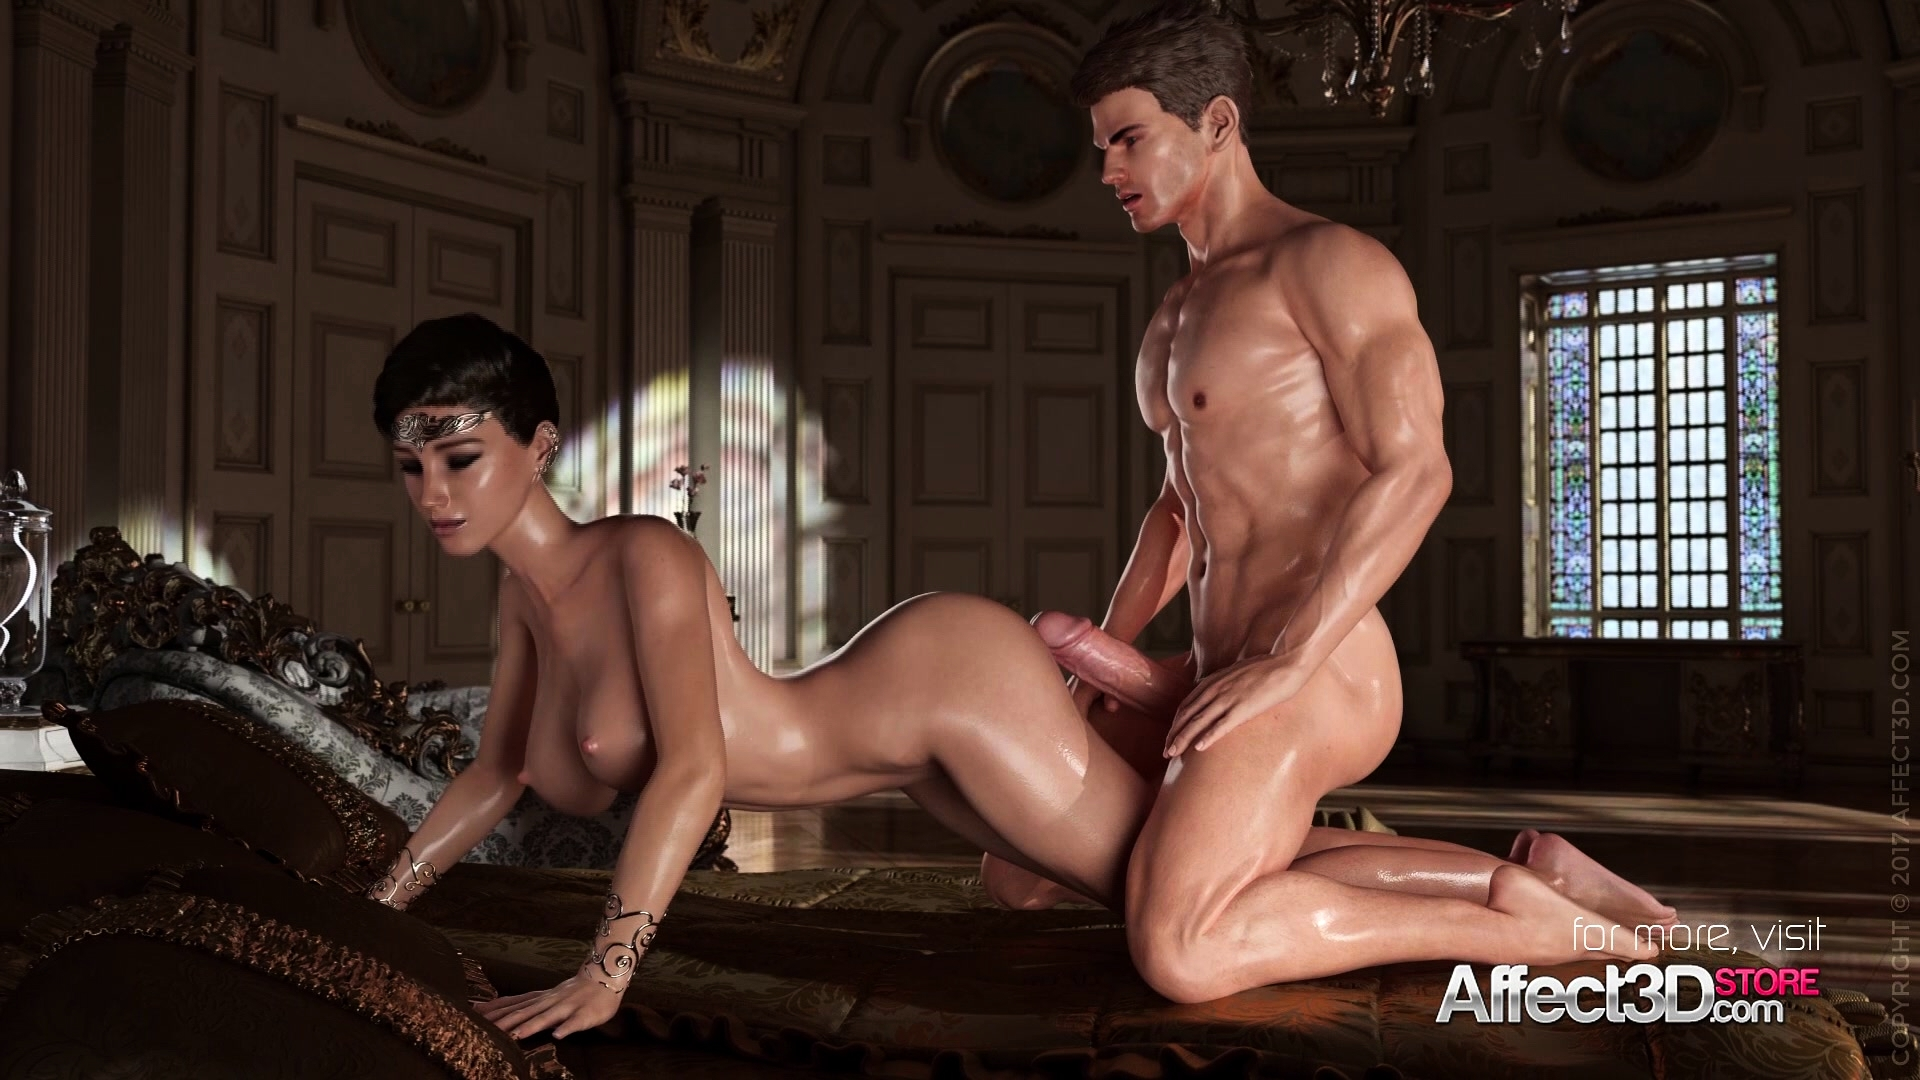 3D Hd Porn Videos free mobile porn - horny 3d princess giving blowjob to his